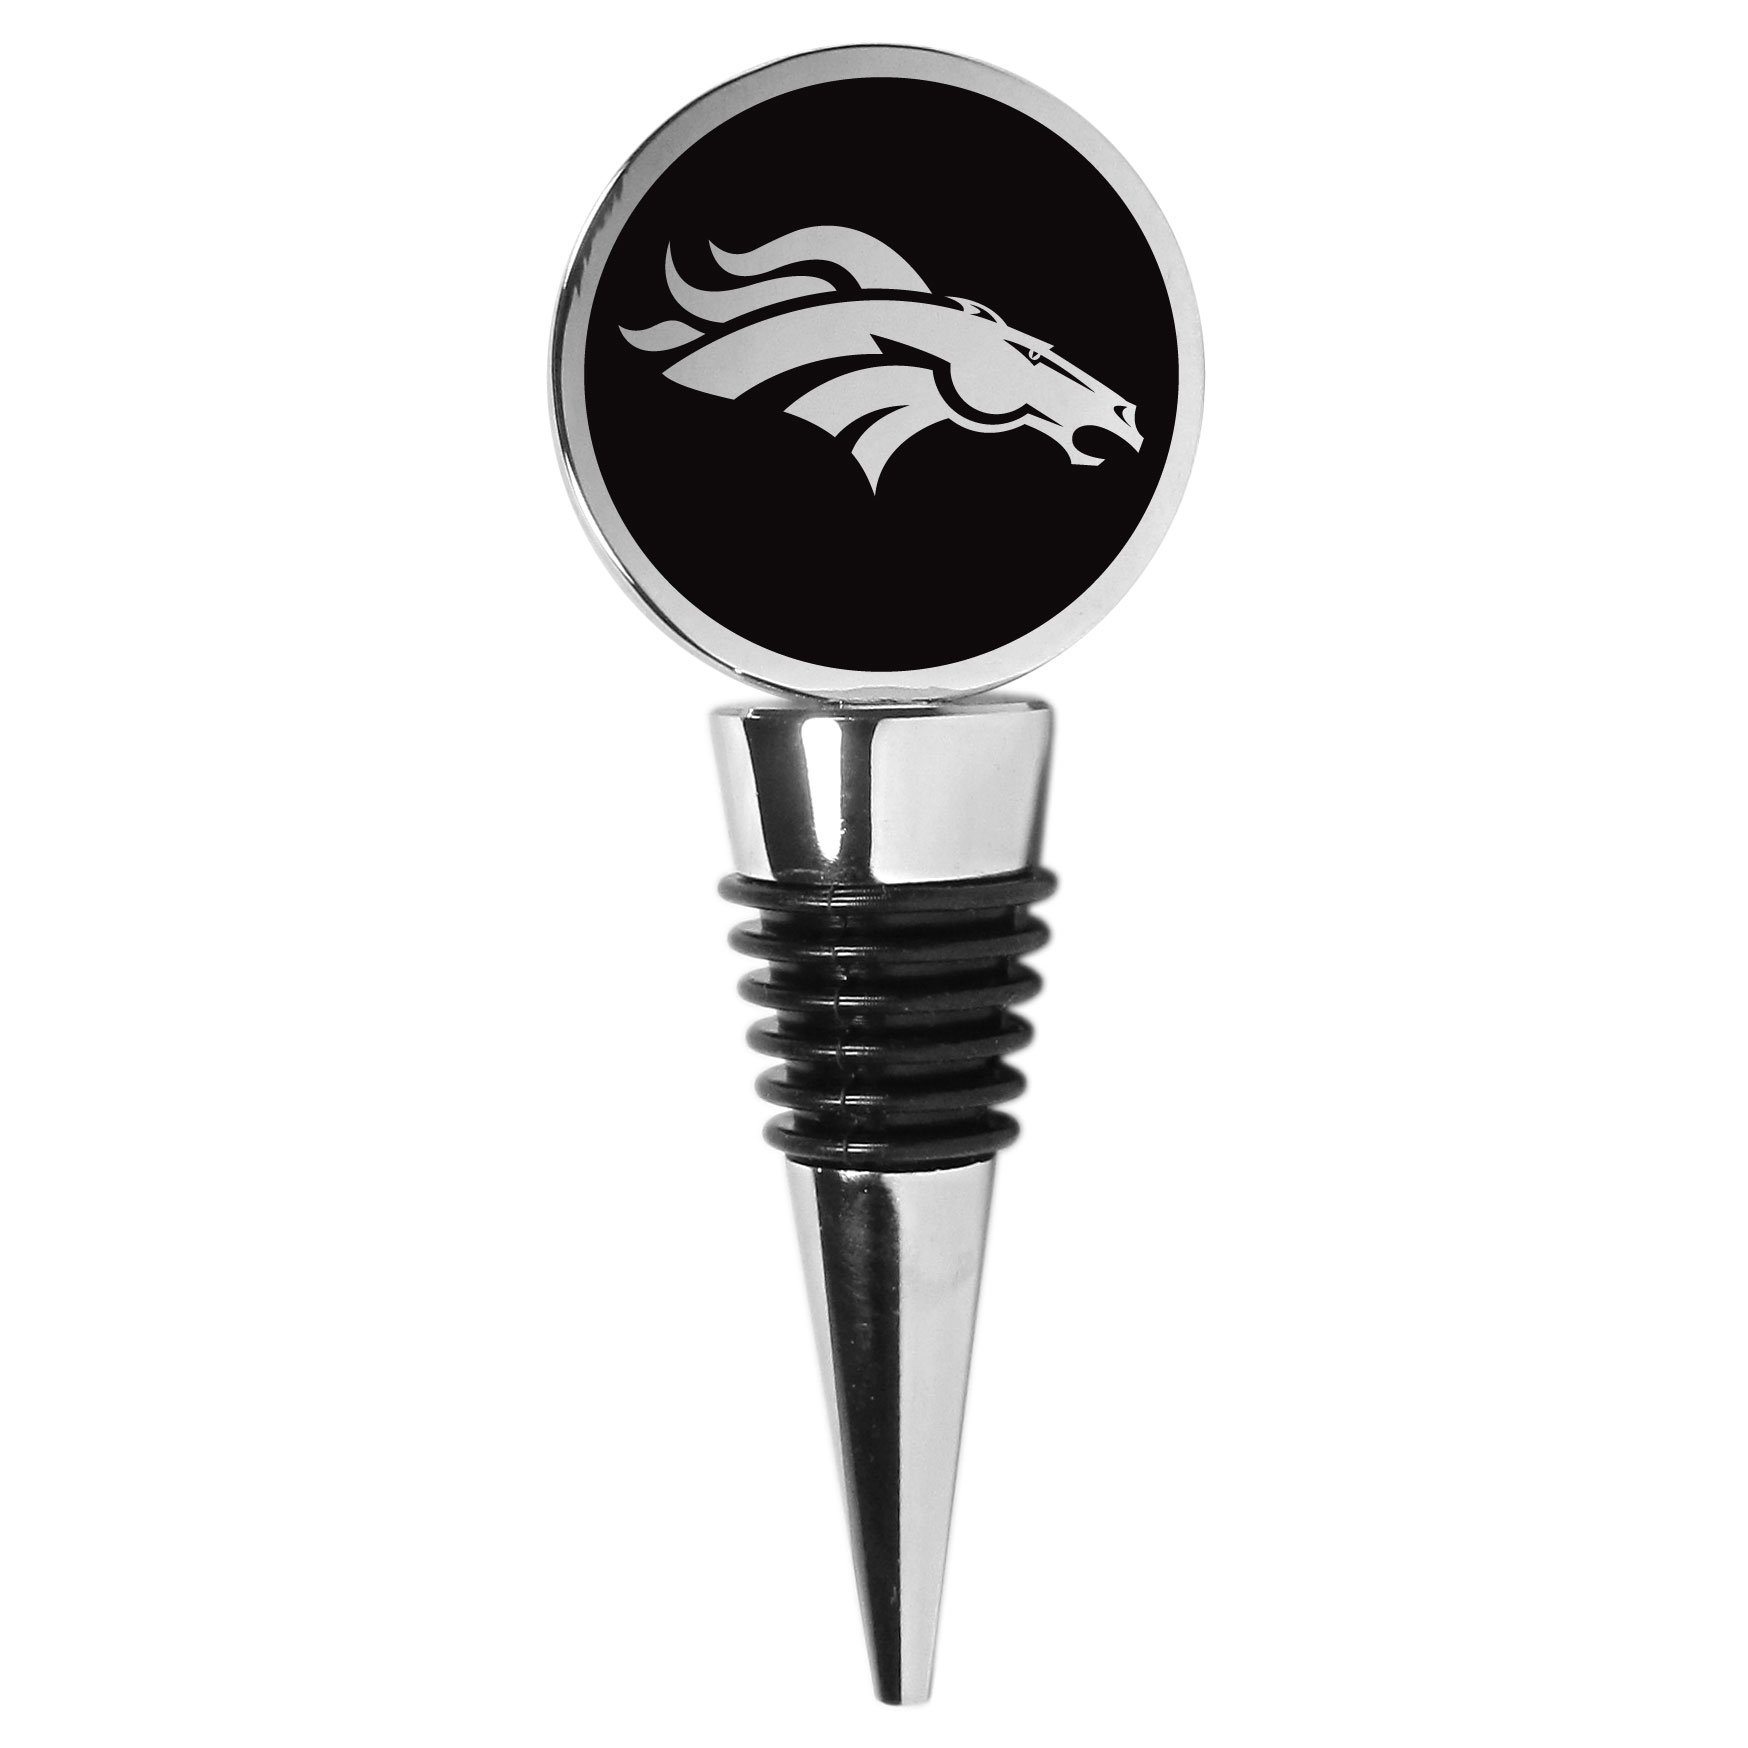 Denver Broncos Wine Stopper - This beautiful Denver Broncos wine stopper has a classy monochromatic logo on the top disc. The tapered rubber rings allow you to create a tight seal on multiple sizes of wine bottles so that you are able to preserve the wine for later enjoyment. This a perfect addition to a game day celebration.